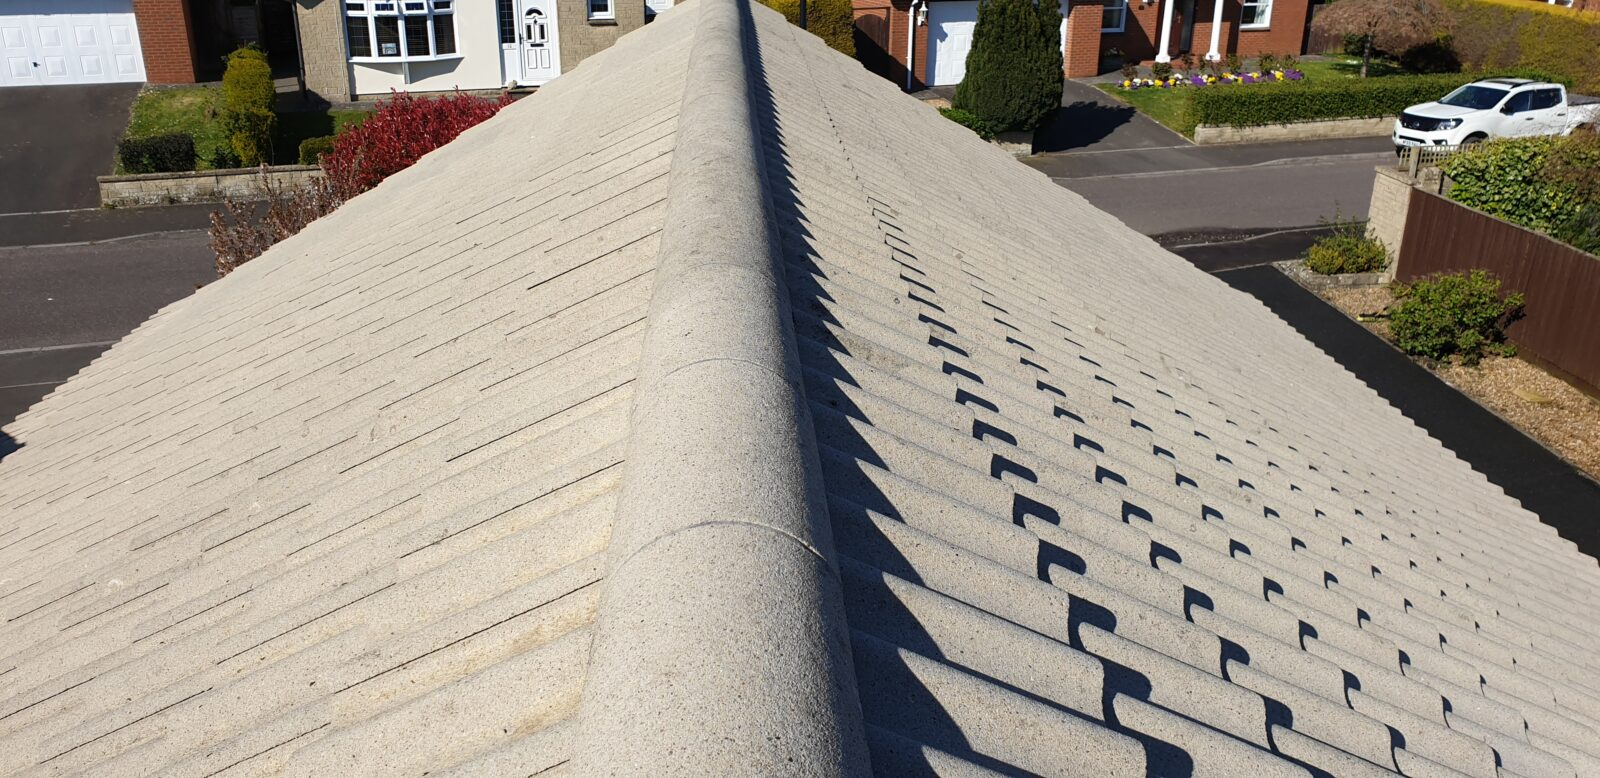 The benefits of roof cleaning - All Trade pressure washing